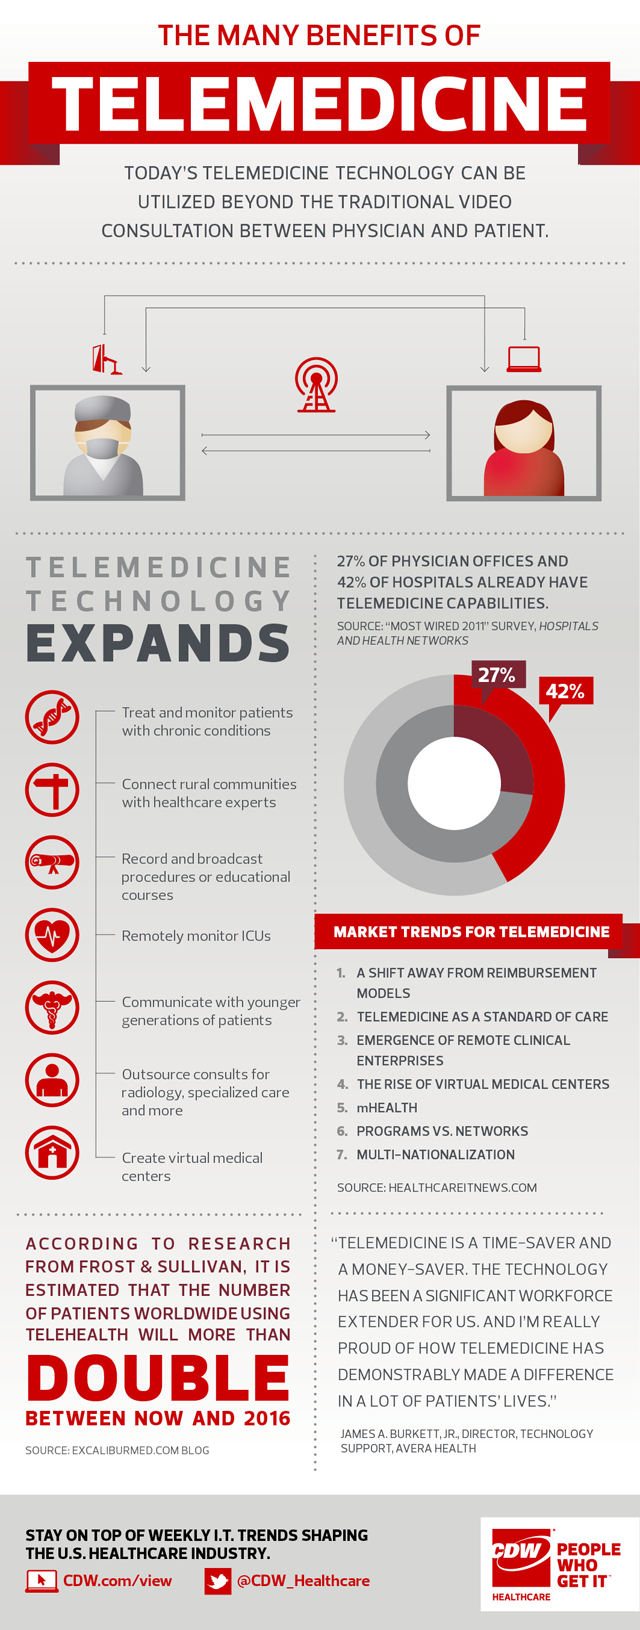 Telemedicine Trends from CDW Healthcare #hospital #tech www.industryview.cdwcommunit.com